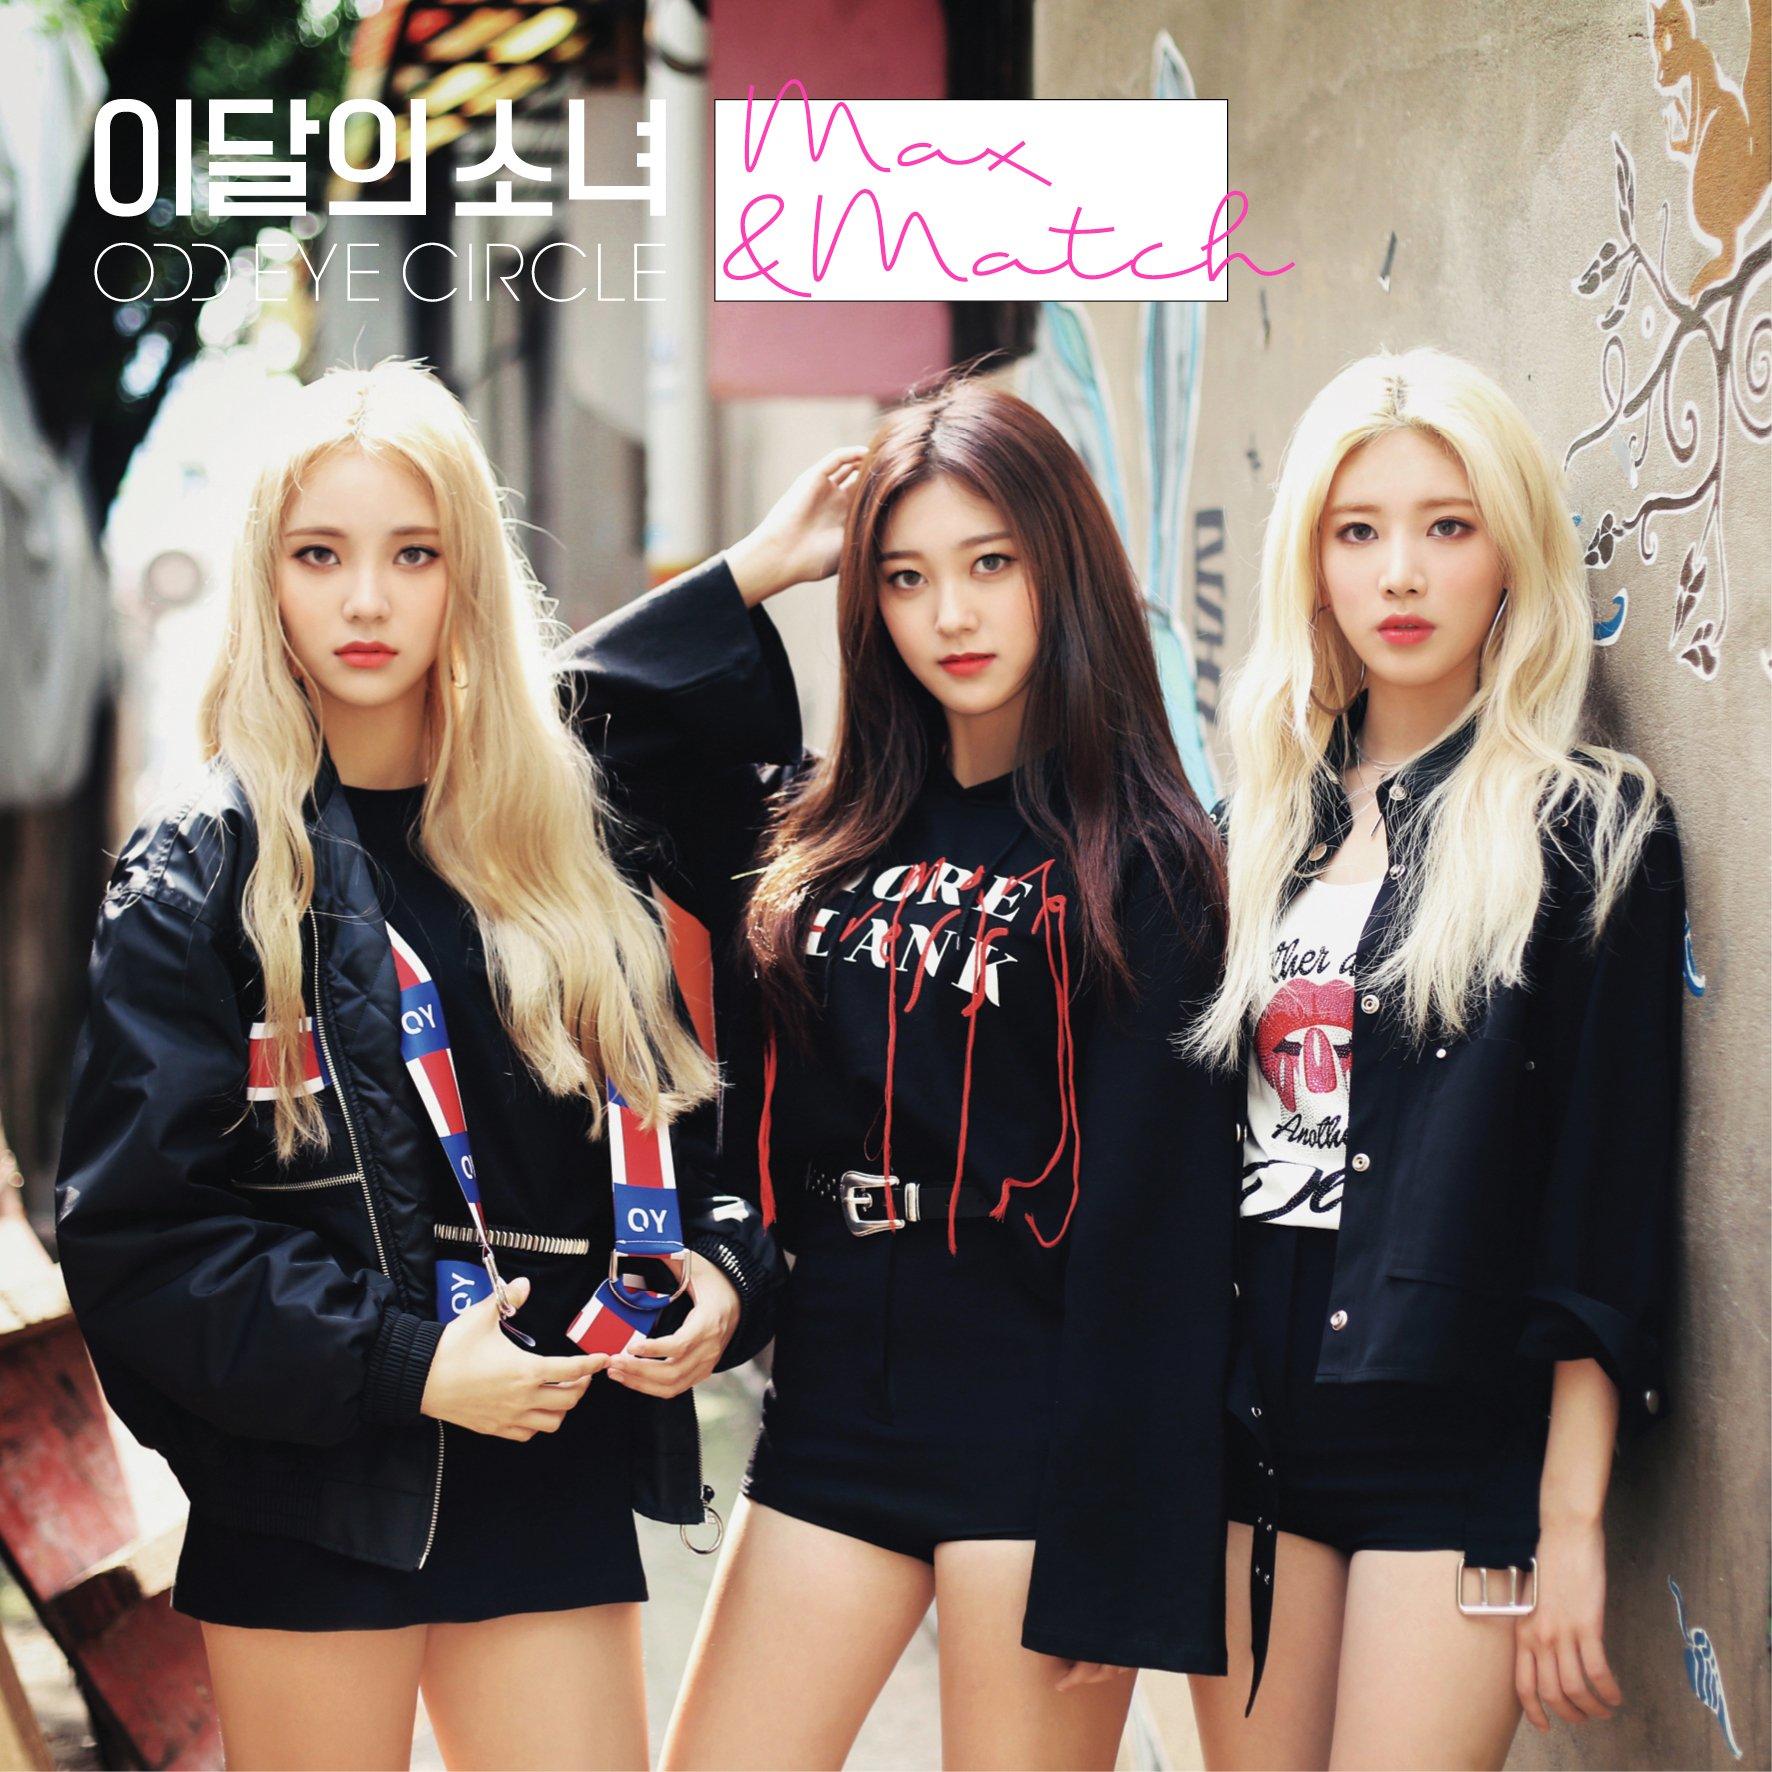 ODD EYE CIRCLE Max and Match normal cover art.png